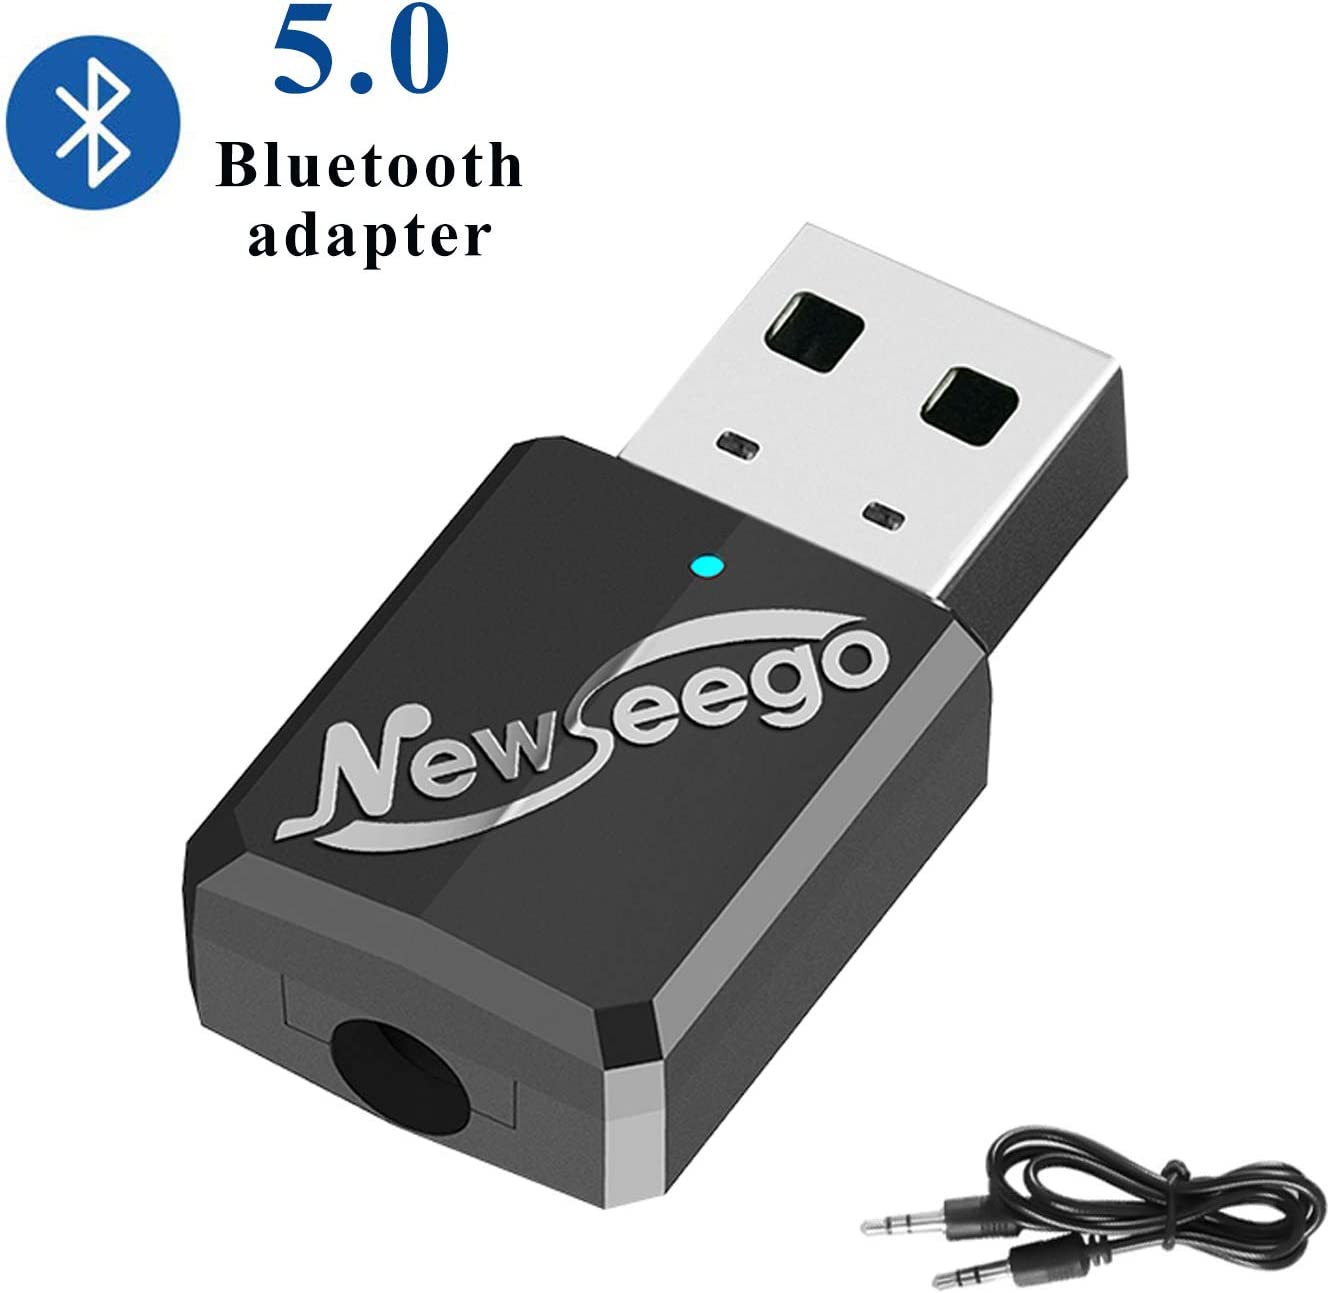 Newseego Receptor Transmisor Bluetooth 5.0 USB, Emisor Audio Bluetooth Adaptador Transmisor A2DP para TV, PC (Cable de Audio de 3,5 mm) para Auriculares, Altavoces y Home Sistemas Estéreo de Coche